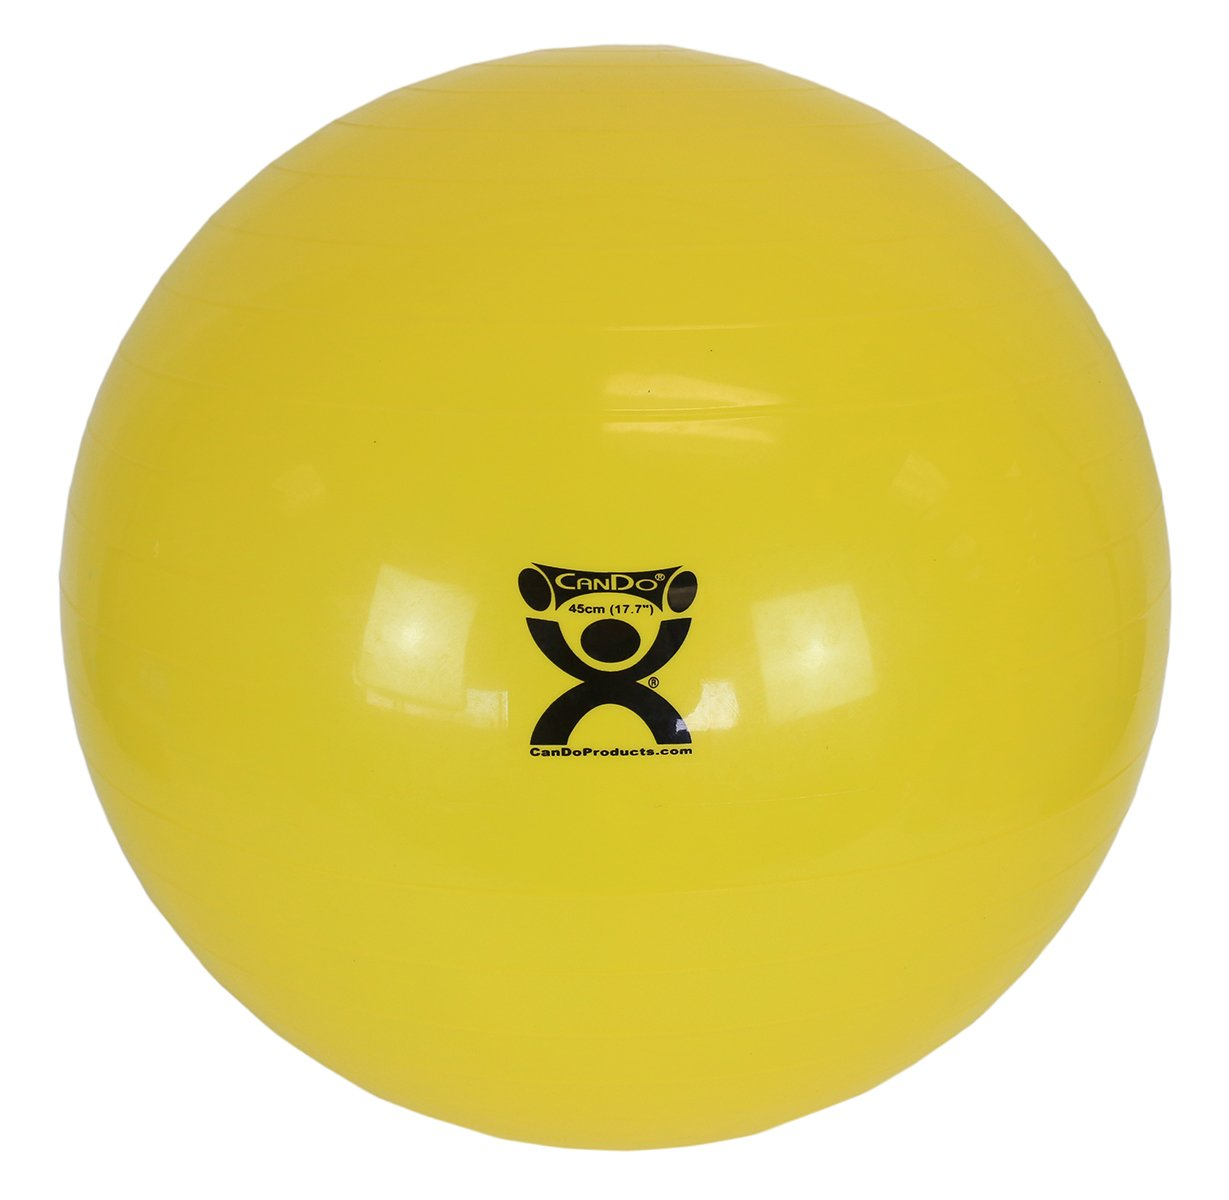 CanDo Non-Slip Vinyl Inflatable Exercise Ball, Yellow, 17.7''